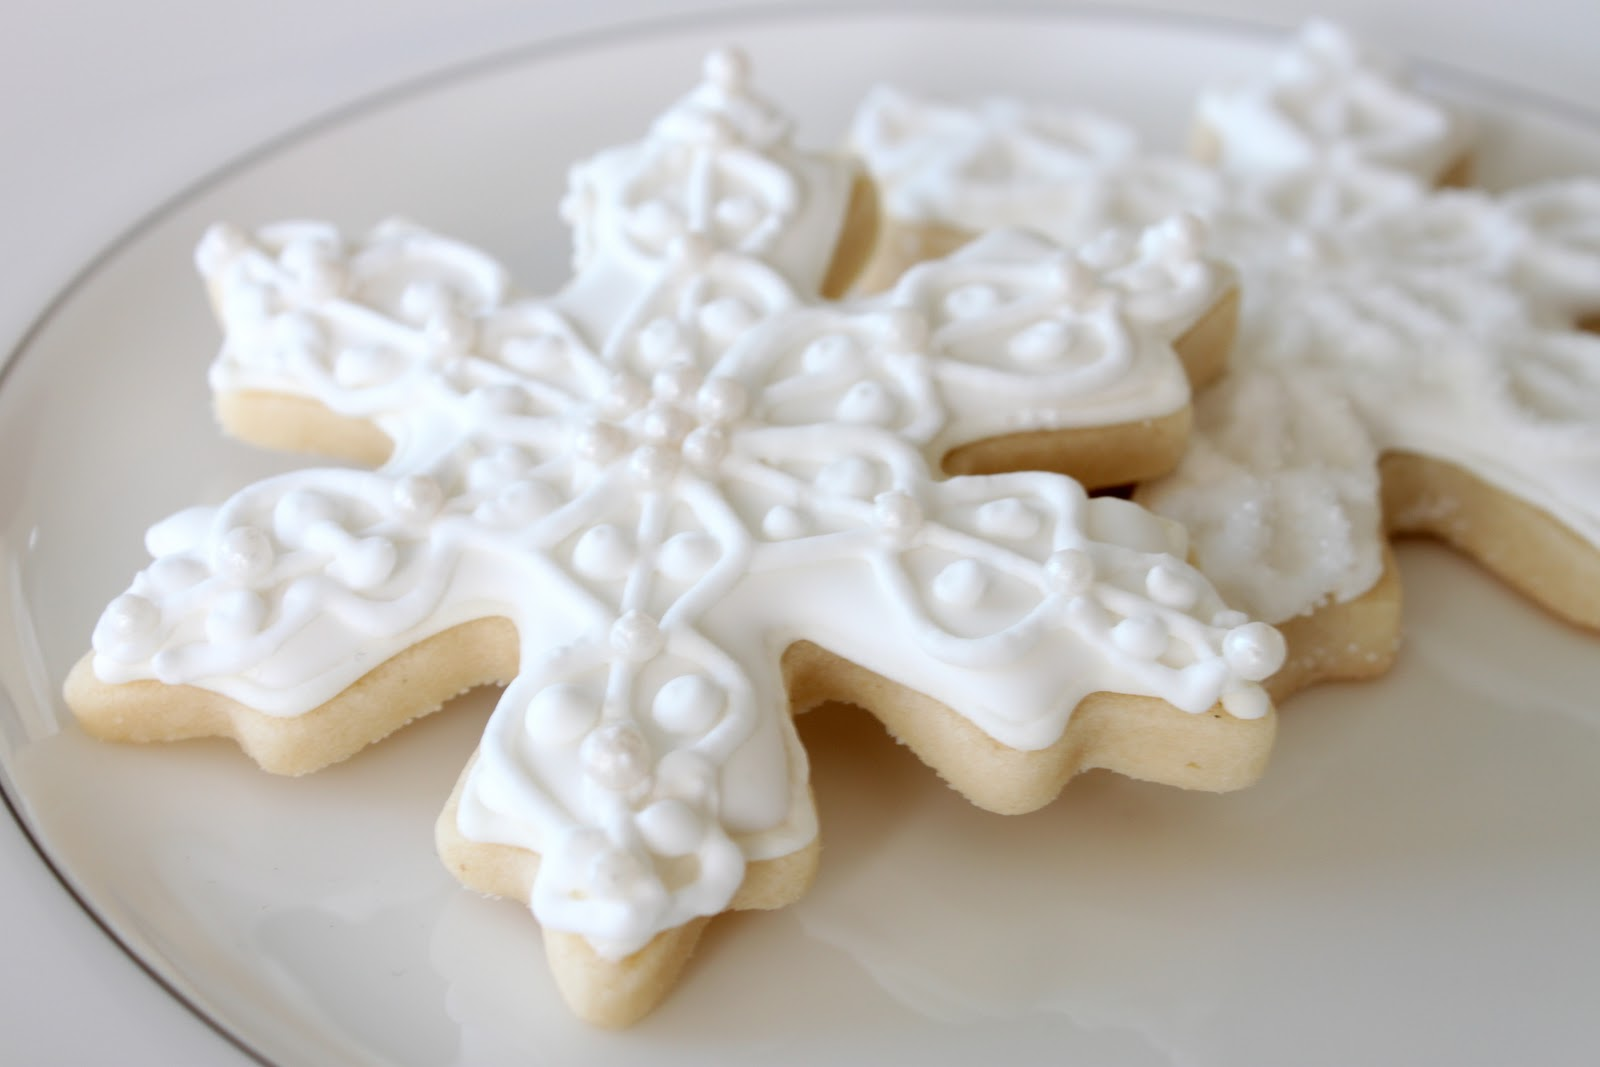 One tradition I love is making Christmas cookies or Candy. Usually with my mom or daugher. I love making cutout cookies with a sweet buttery icing.